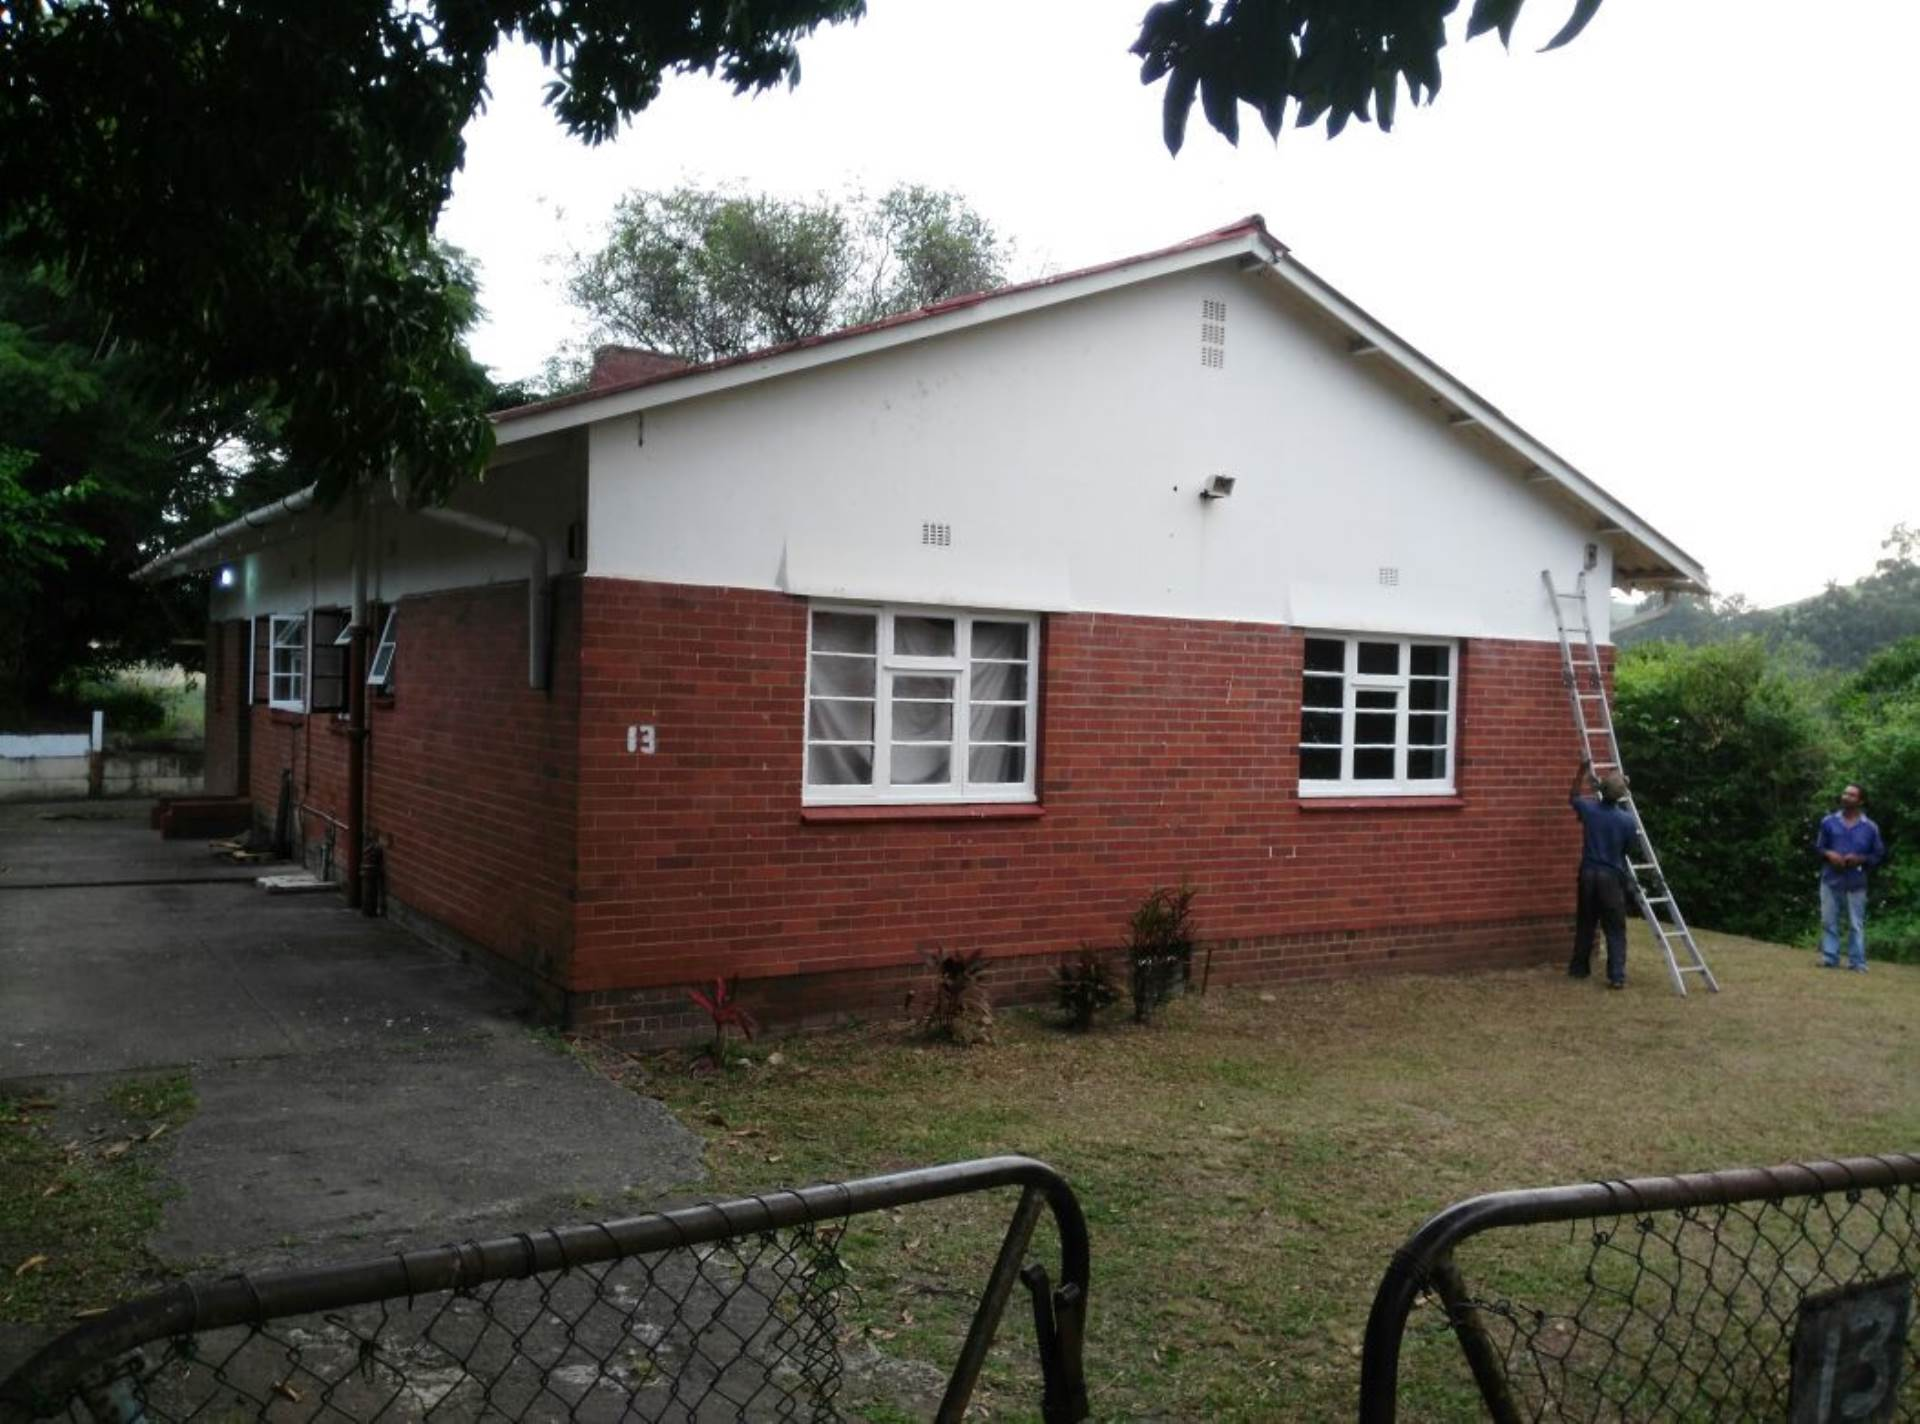 3 BedroomHouse For Sale In Umzinto Township